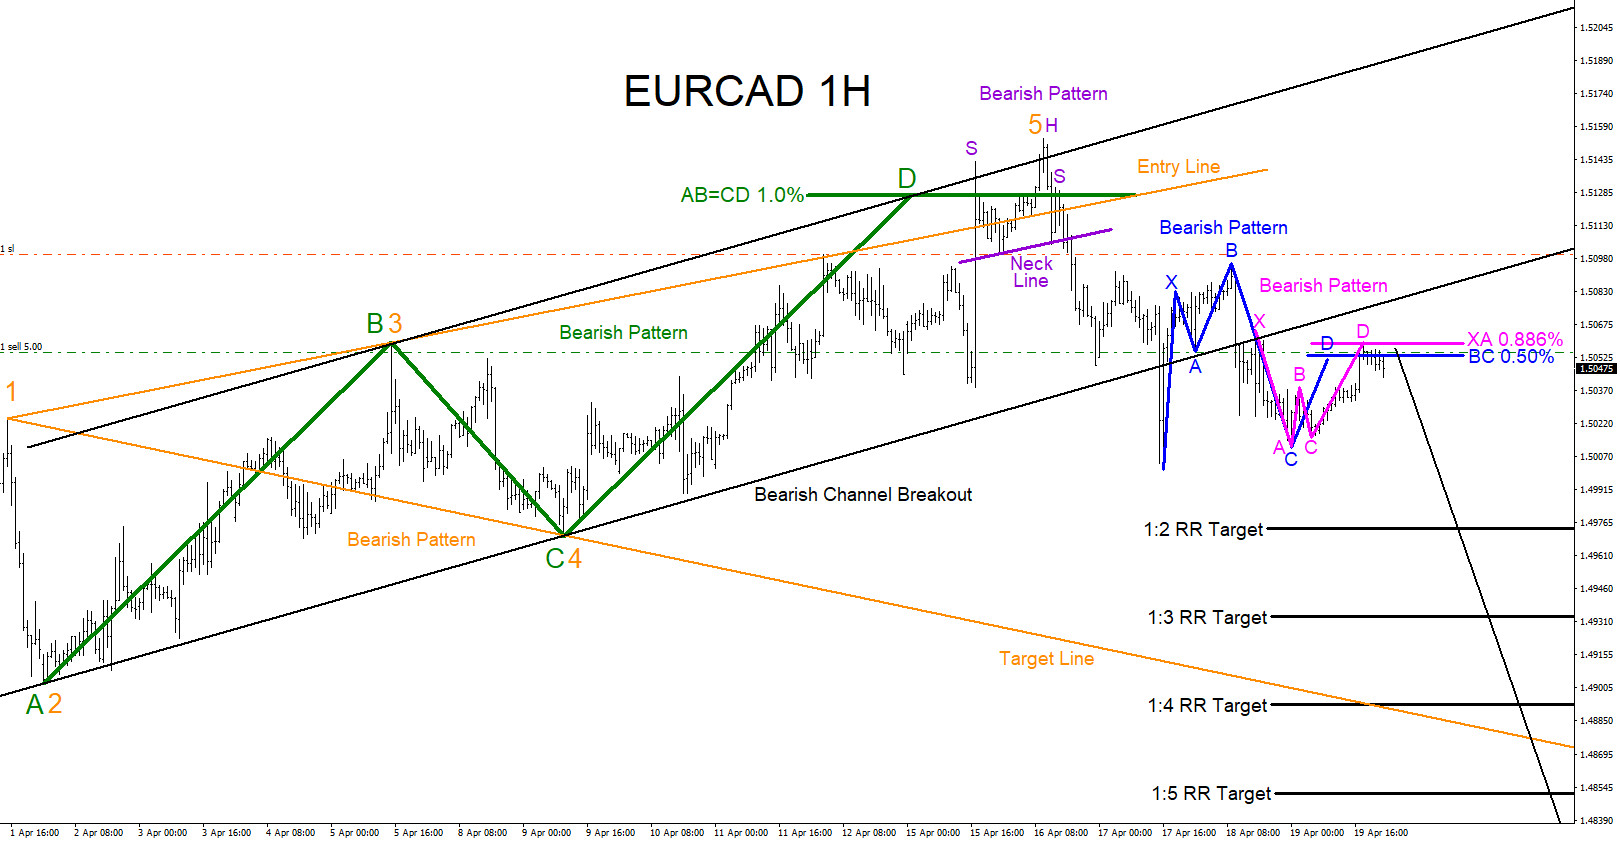 EURCAD : Bearish Patterns Calling Lower?